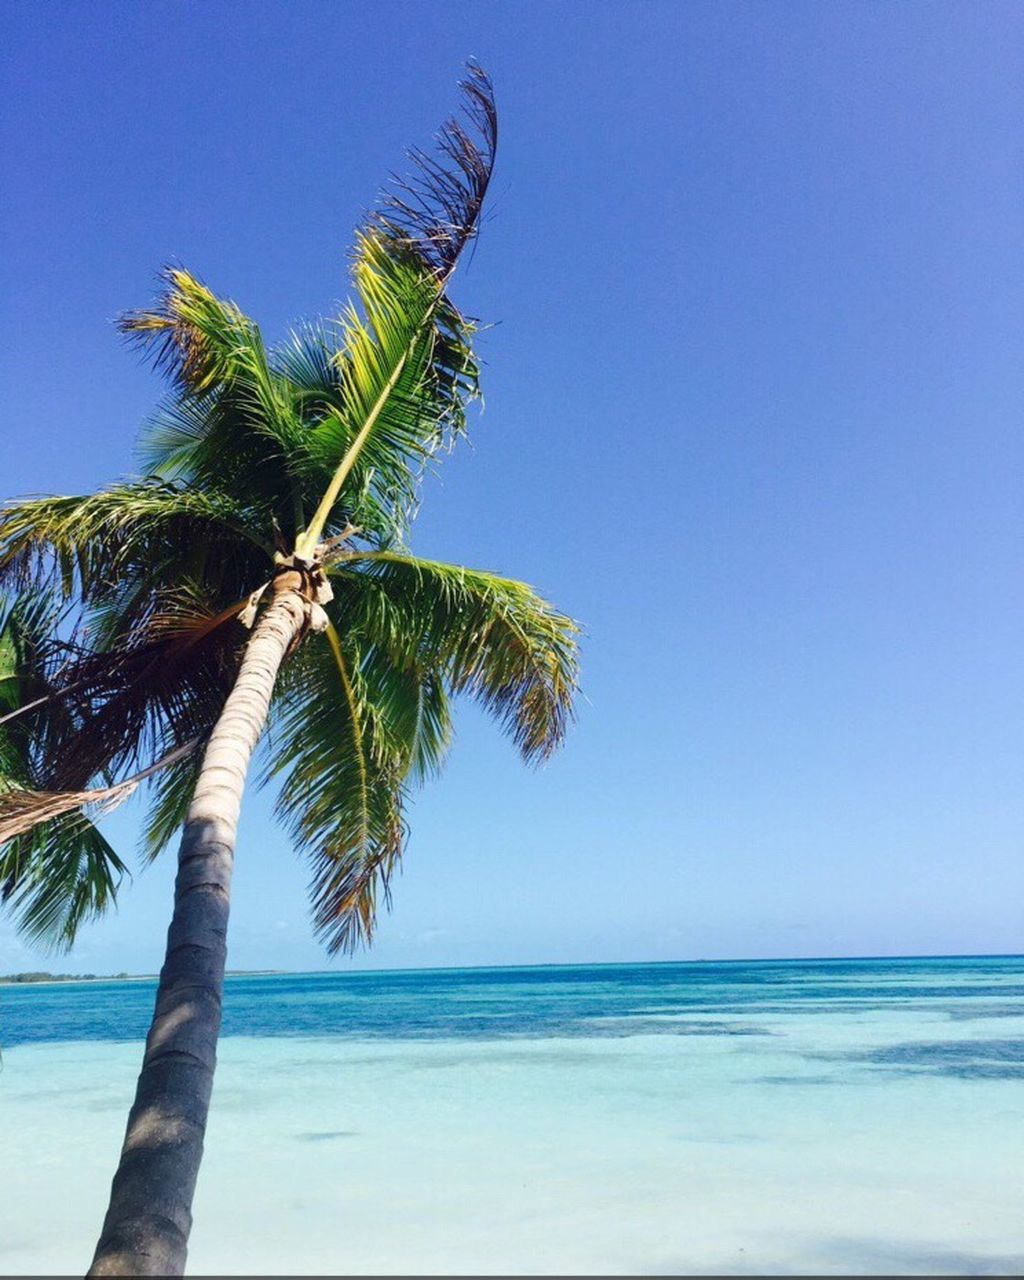 sea, palm tree, tree, nature, beauty in nature, scenics, tranquil scene, horizon over water, blue, clear sky, tranquility, beach, tree trunk, water, sky, outdoors, day, no people, growth